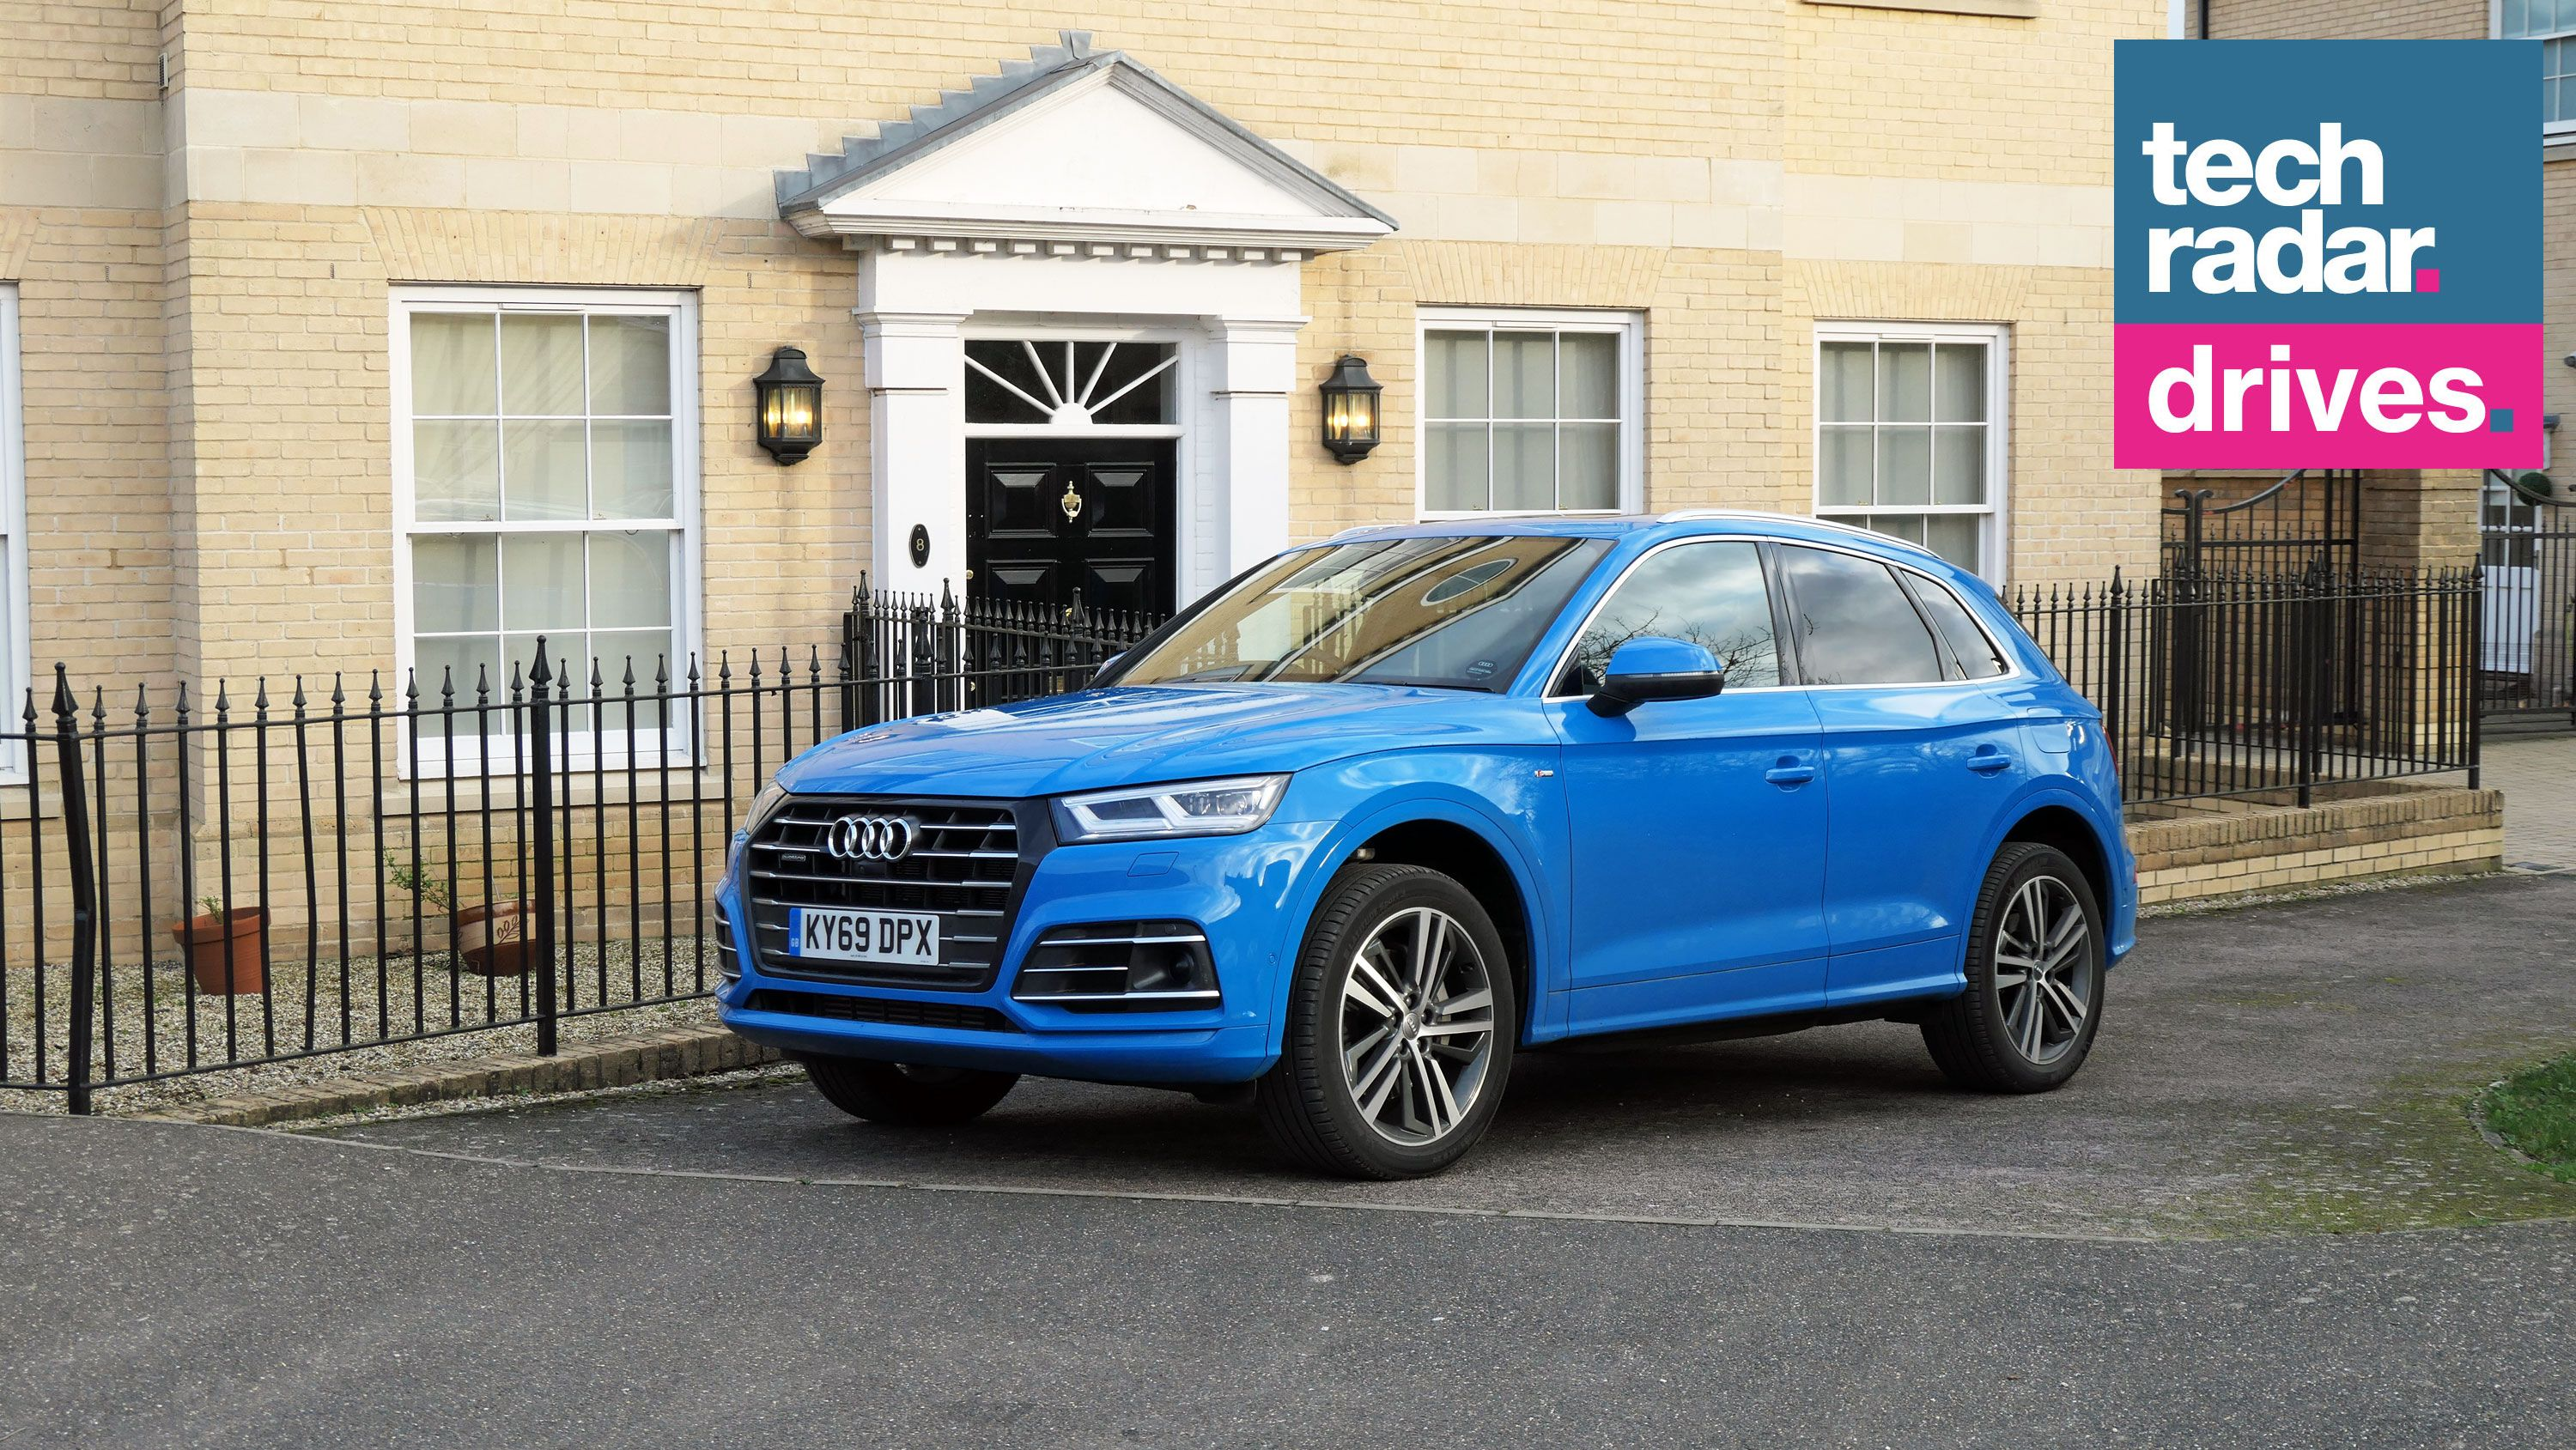 Audi Q5 Tfsi E Audi S Plug In Hybrid Suv Delivers A Smooth Comfortable Quiet Ride Plug In Hybrid Suv Audi Good Looking Cars